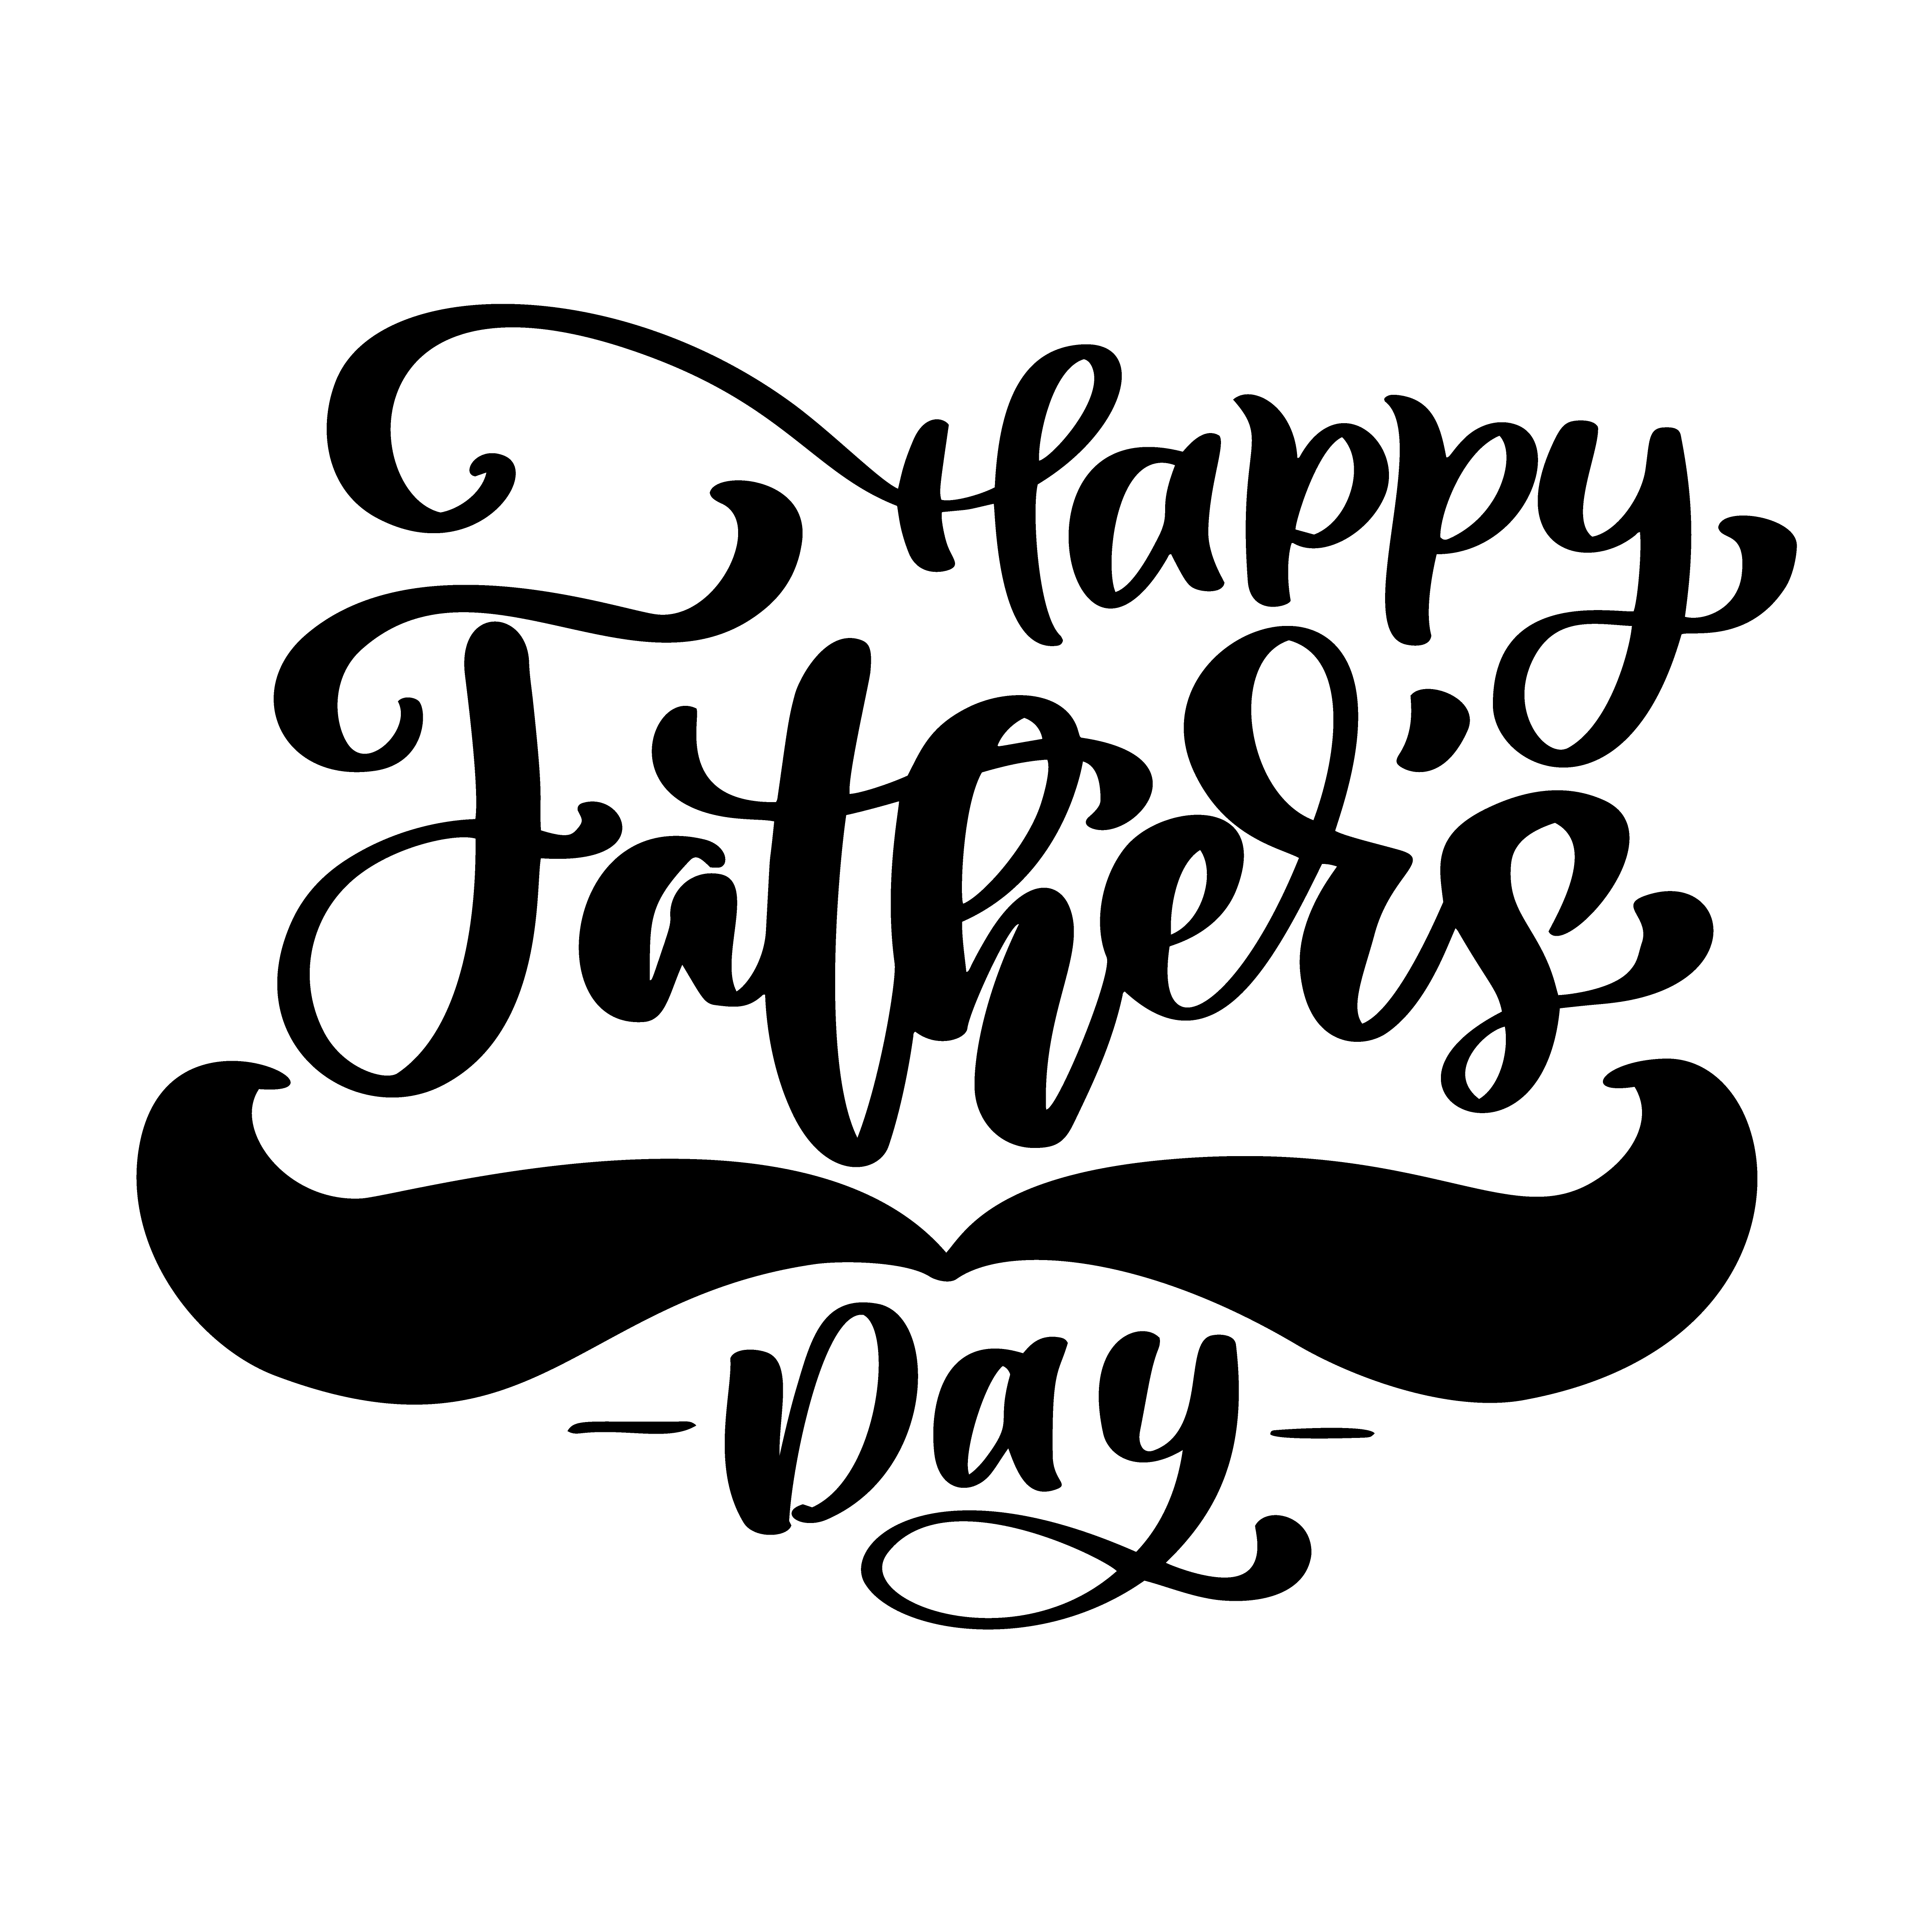 Happy Fathers Day Phrase Hand Drawn Lettering Fathers